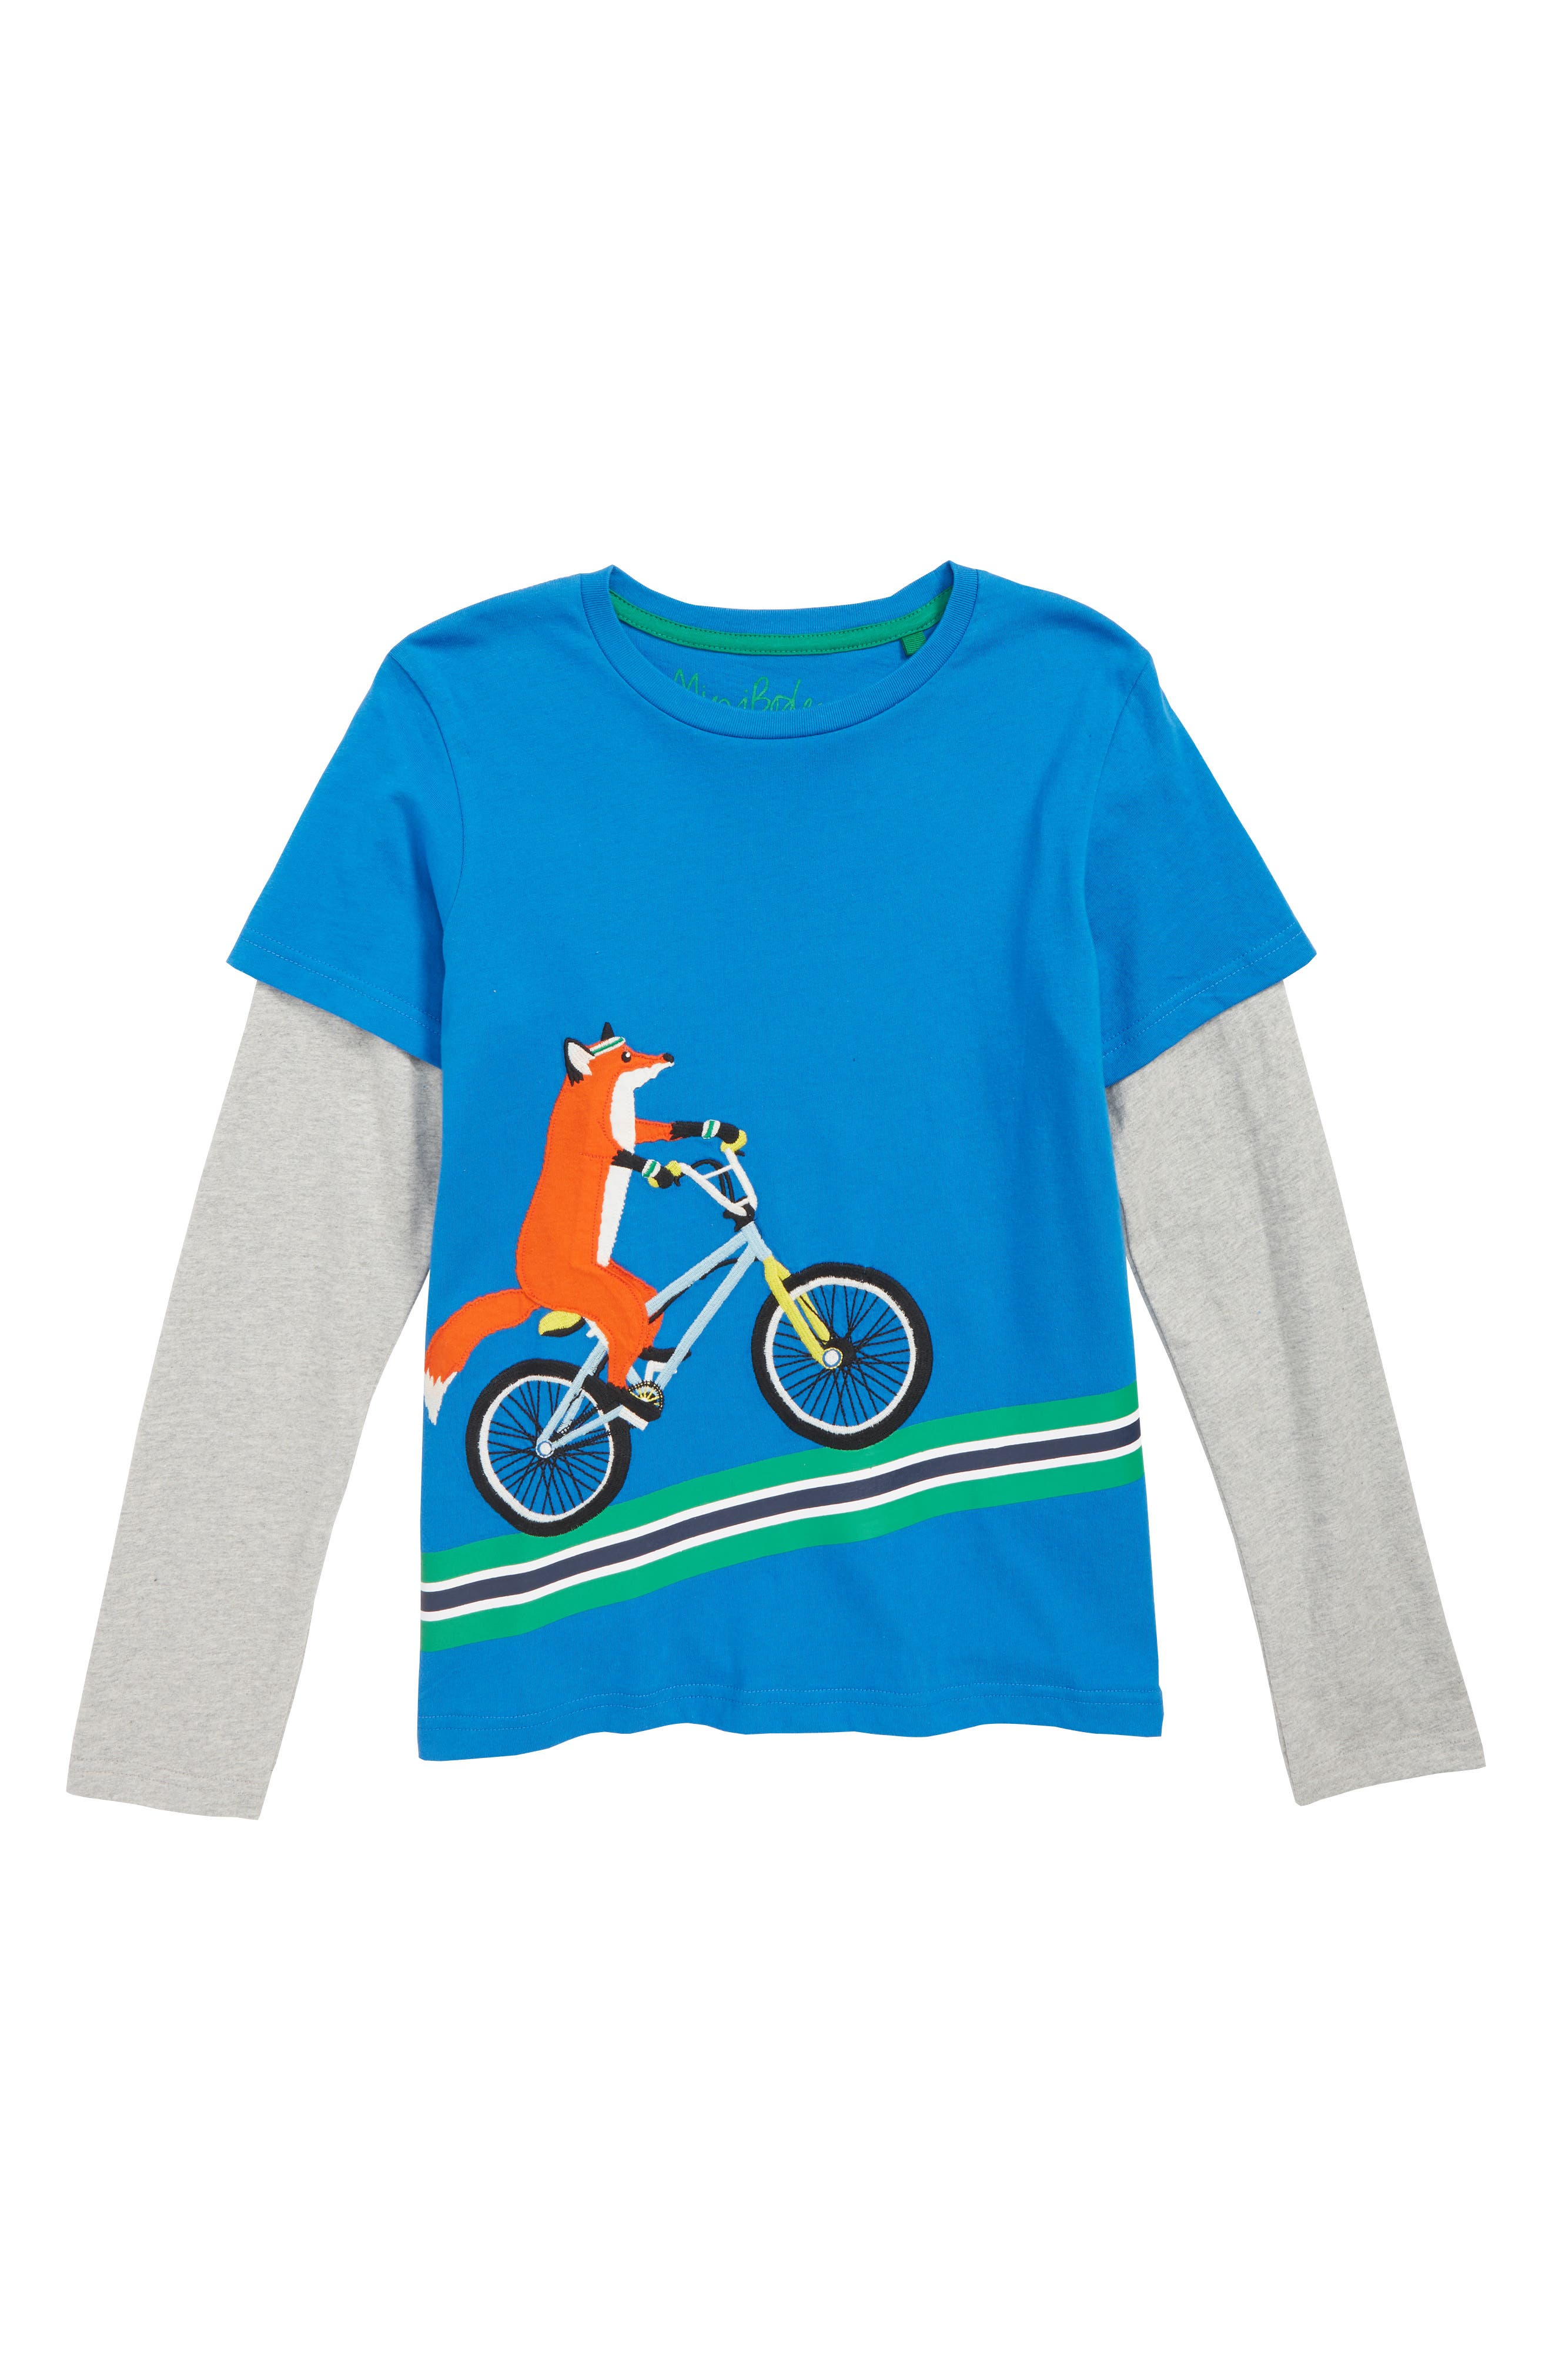 Active Animals Layered T-Shirt,                             Main thumbnail 1, color,                             DAPHNE BLUE